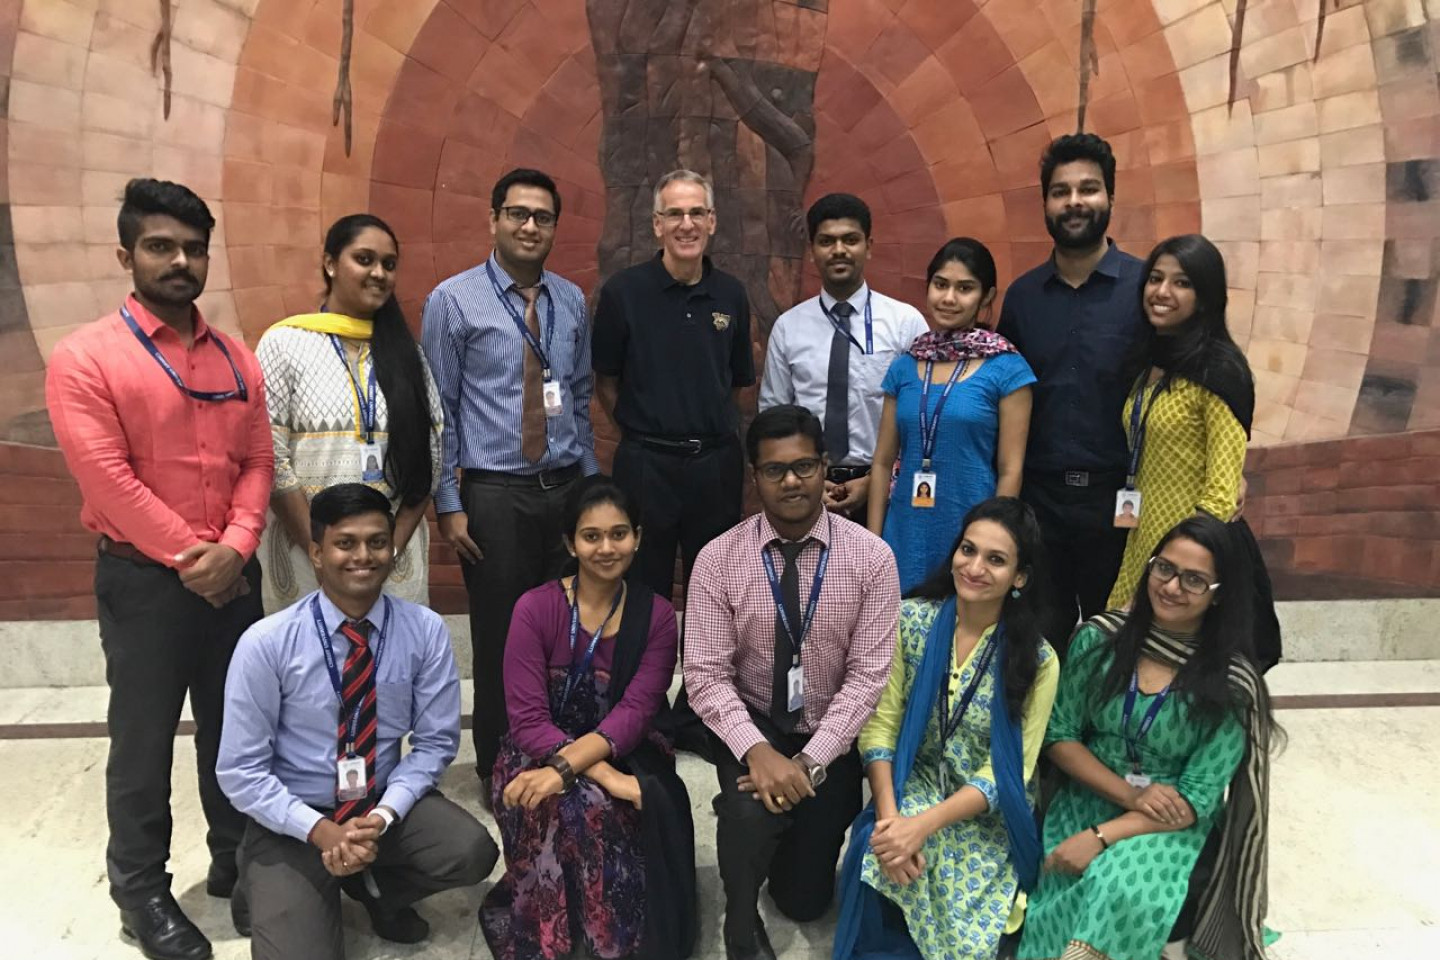 Dr. Tim Palmer stands with students on a study abroad trip in India.